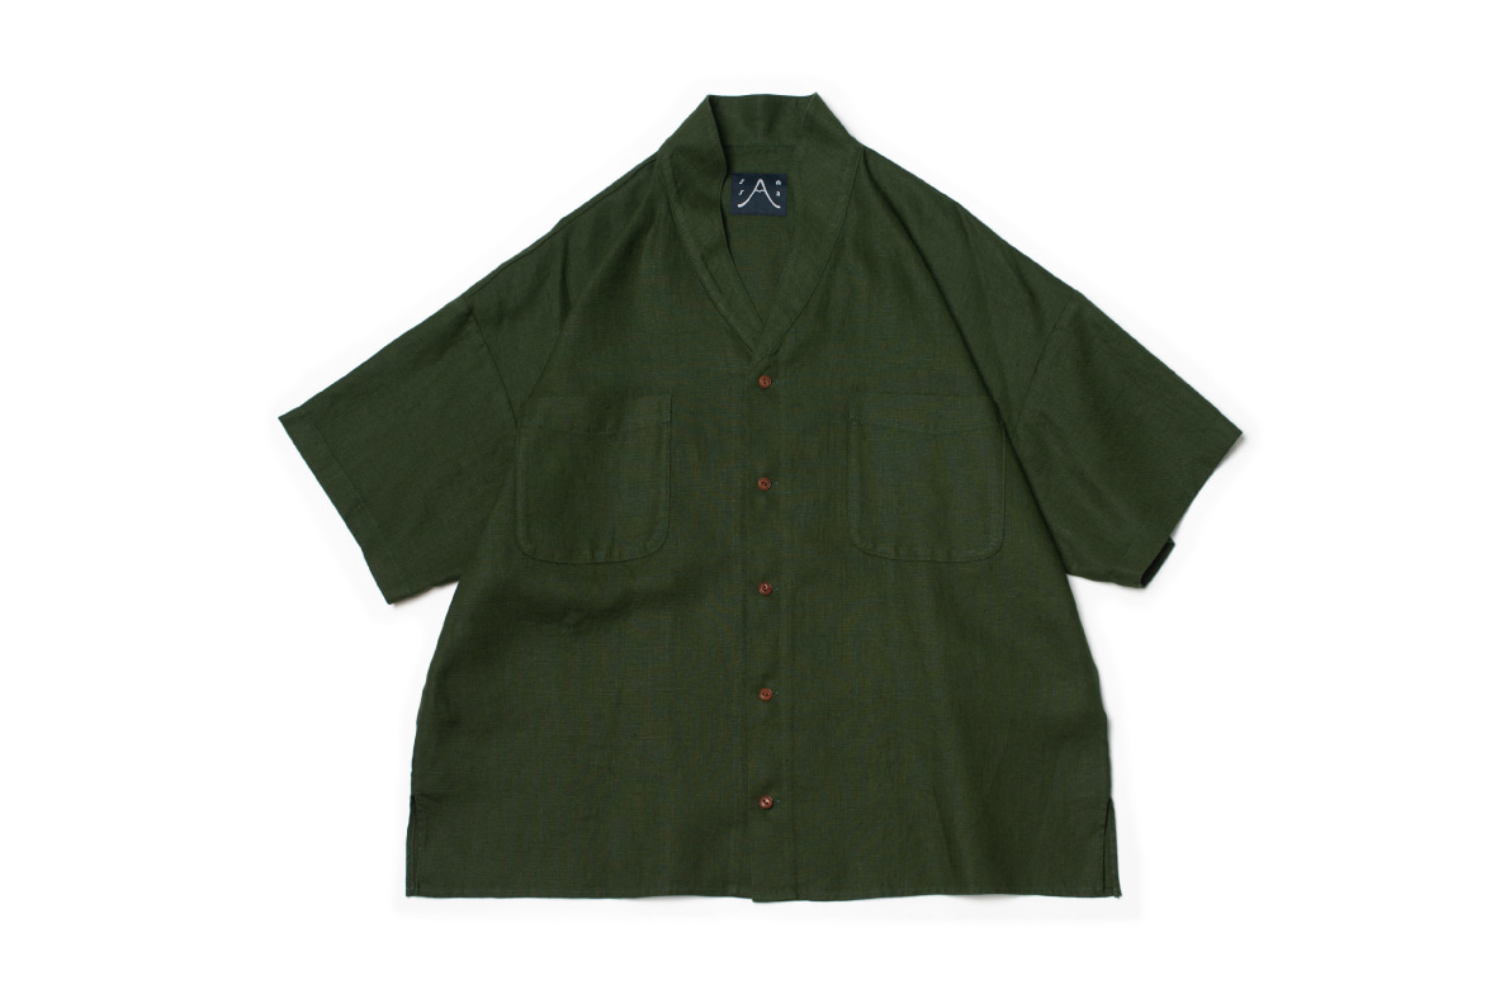 Two-ways Avocado Green SS Shirt L